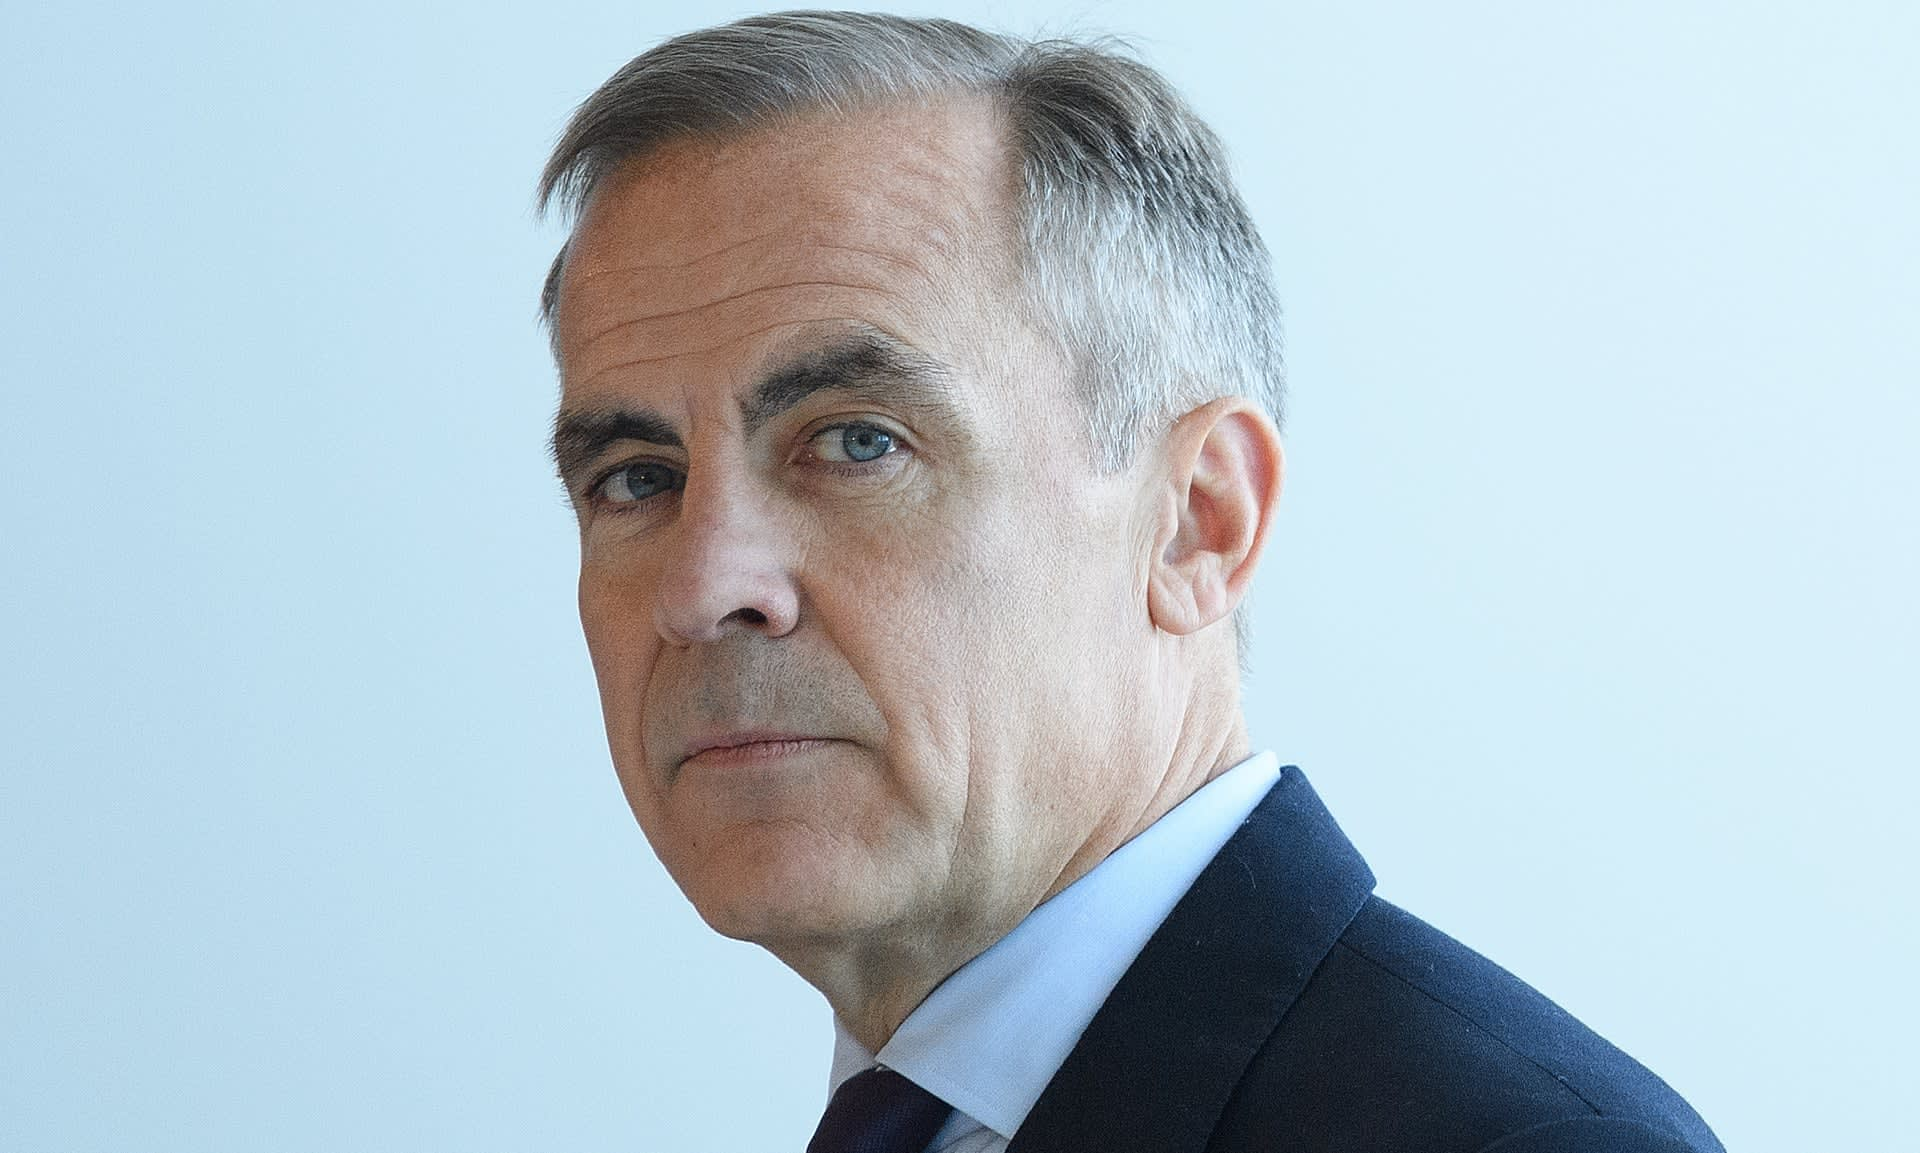 Mark Carney, the Bank of England governor, has led efforts to address the dangers global heating poses to the financial sector. Photograph: Leon Neal/Getty Images | ClimeNews